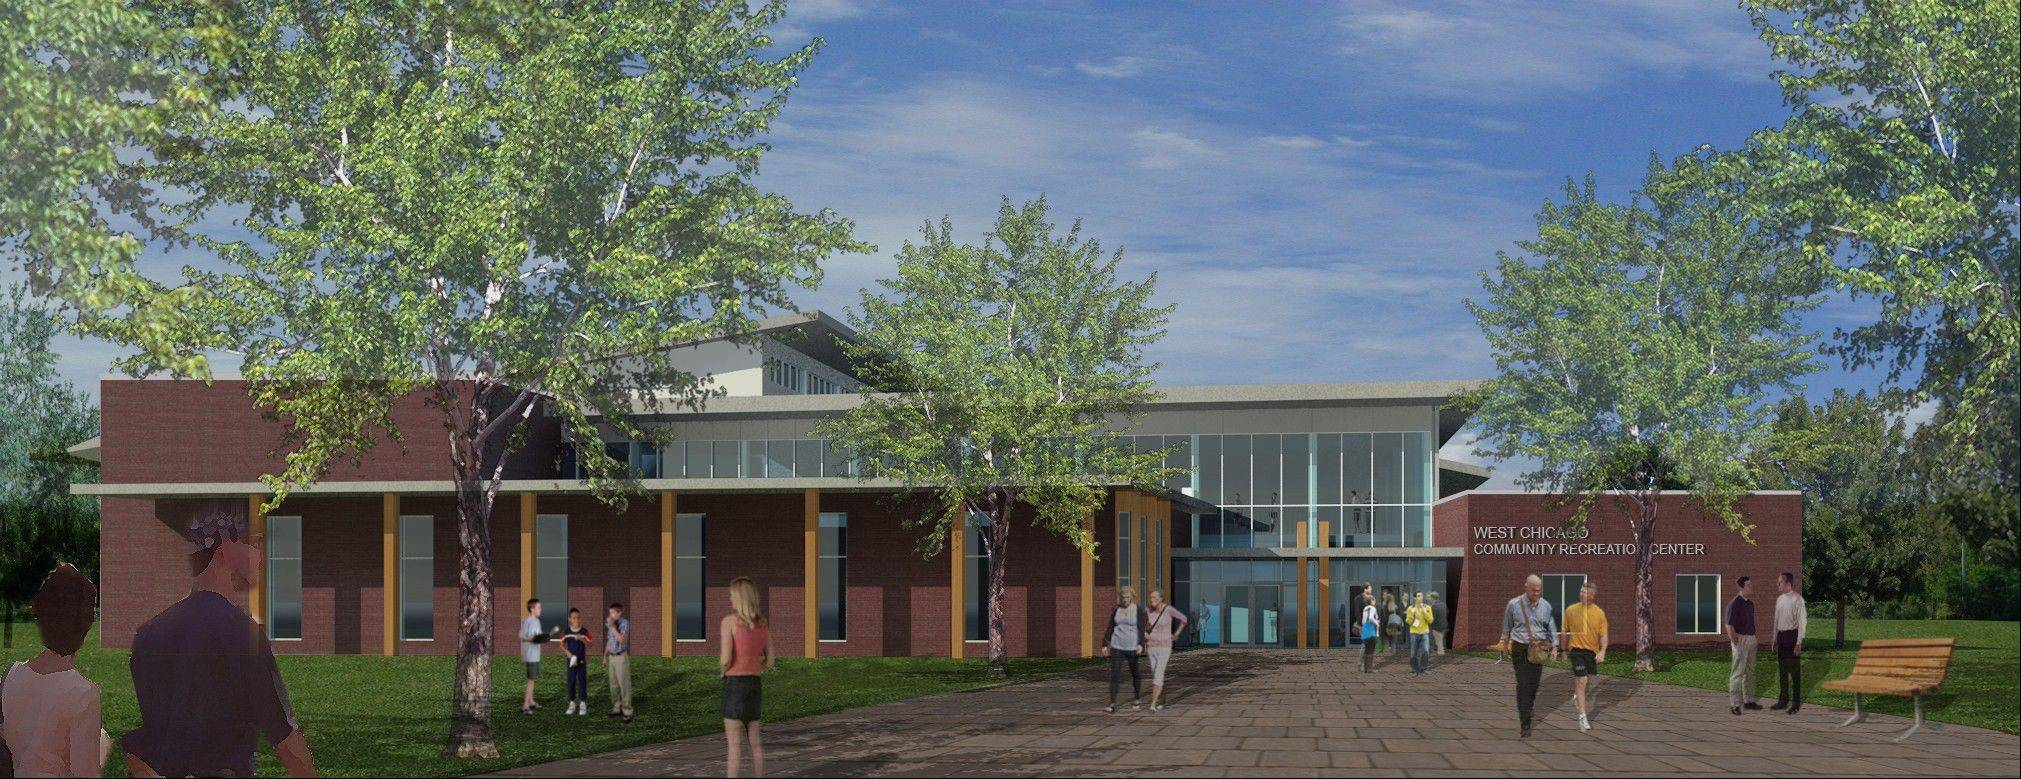 West Chicago seeks input on revised rec center proposal